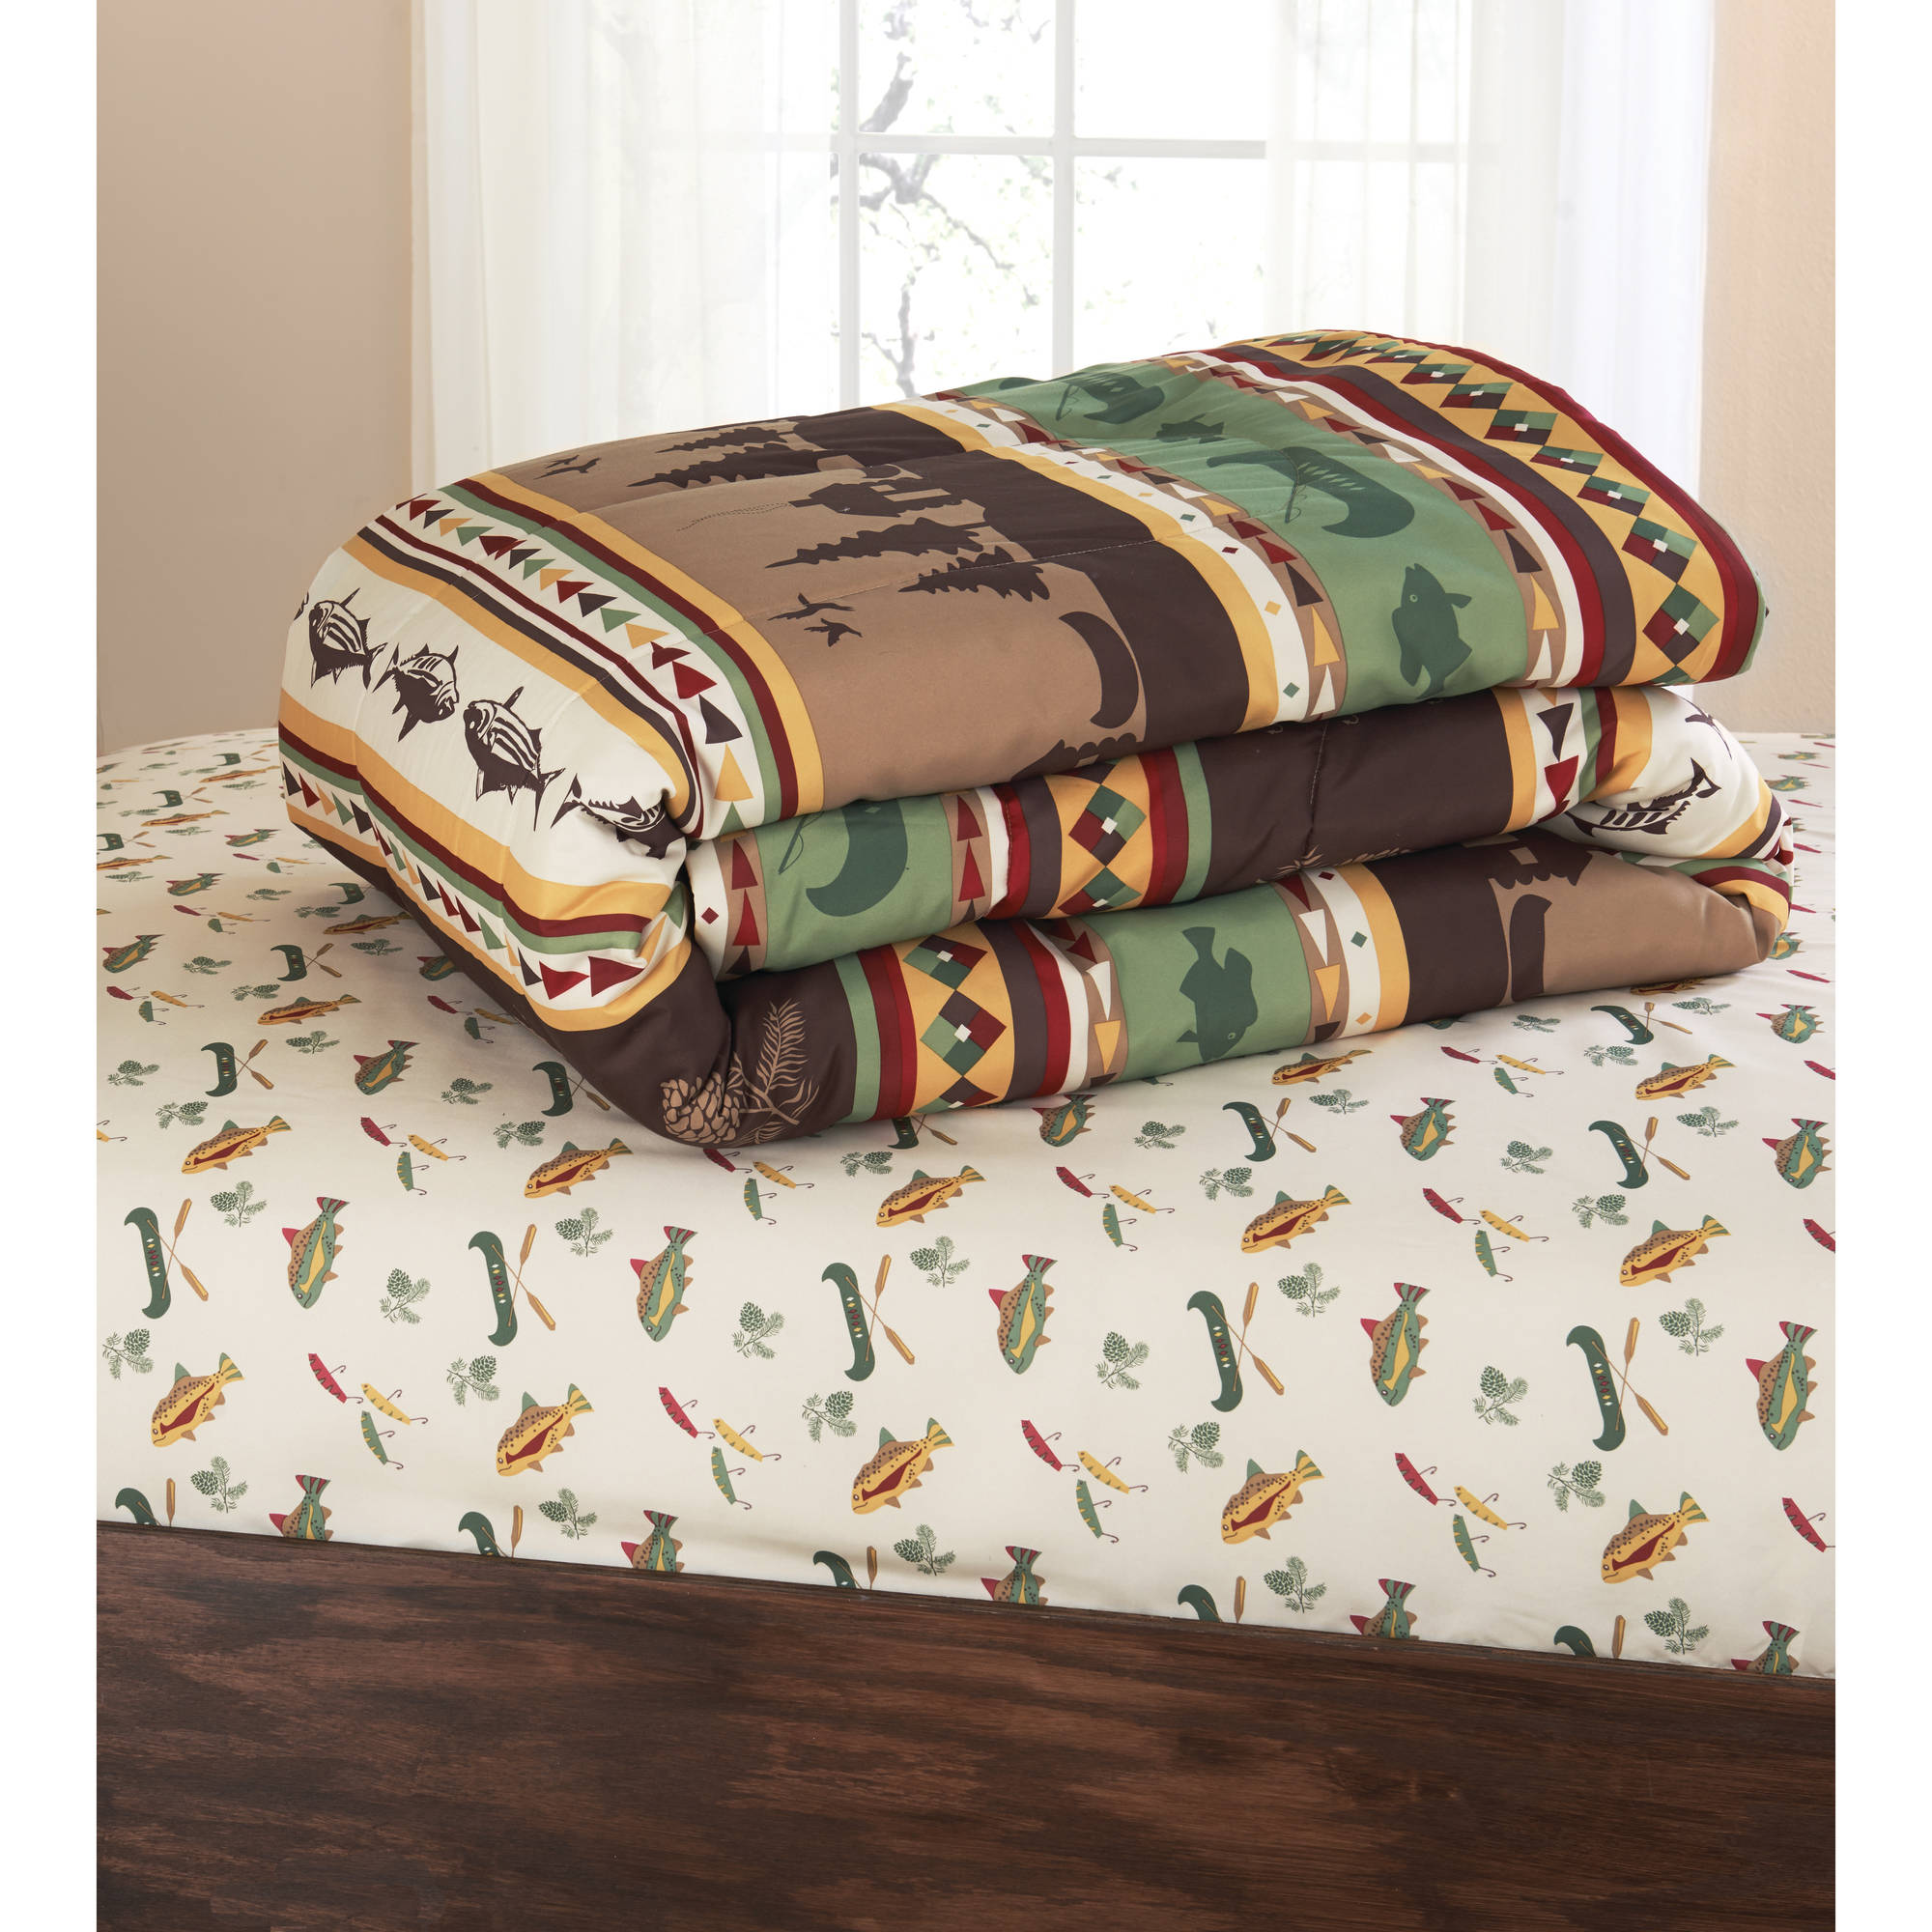 Queen Size Sheet Sets Bedding Set Queen Size Fitted Sheets Comforter Gone